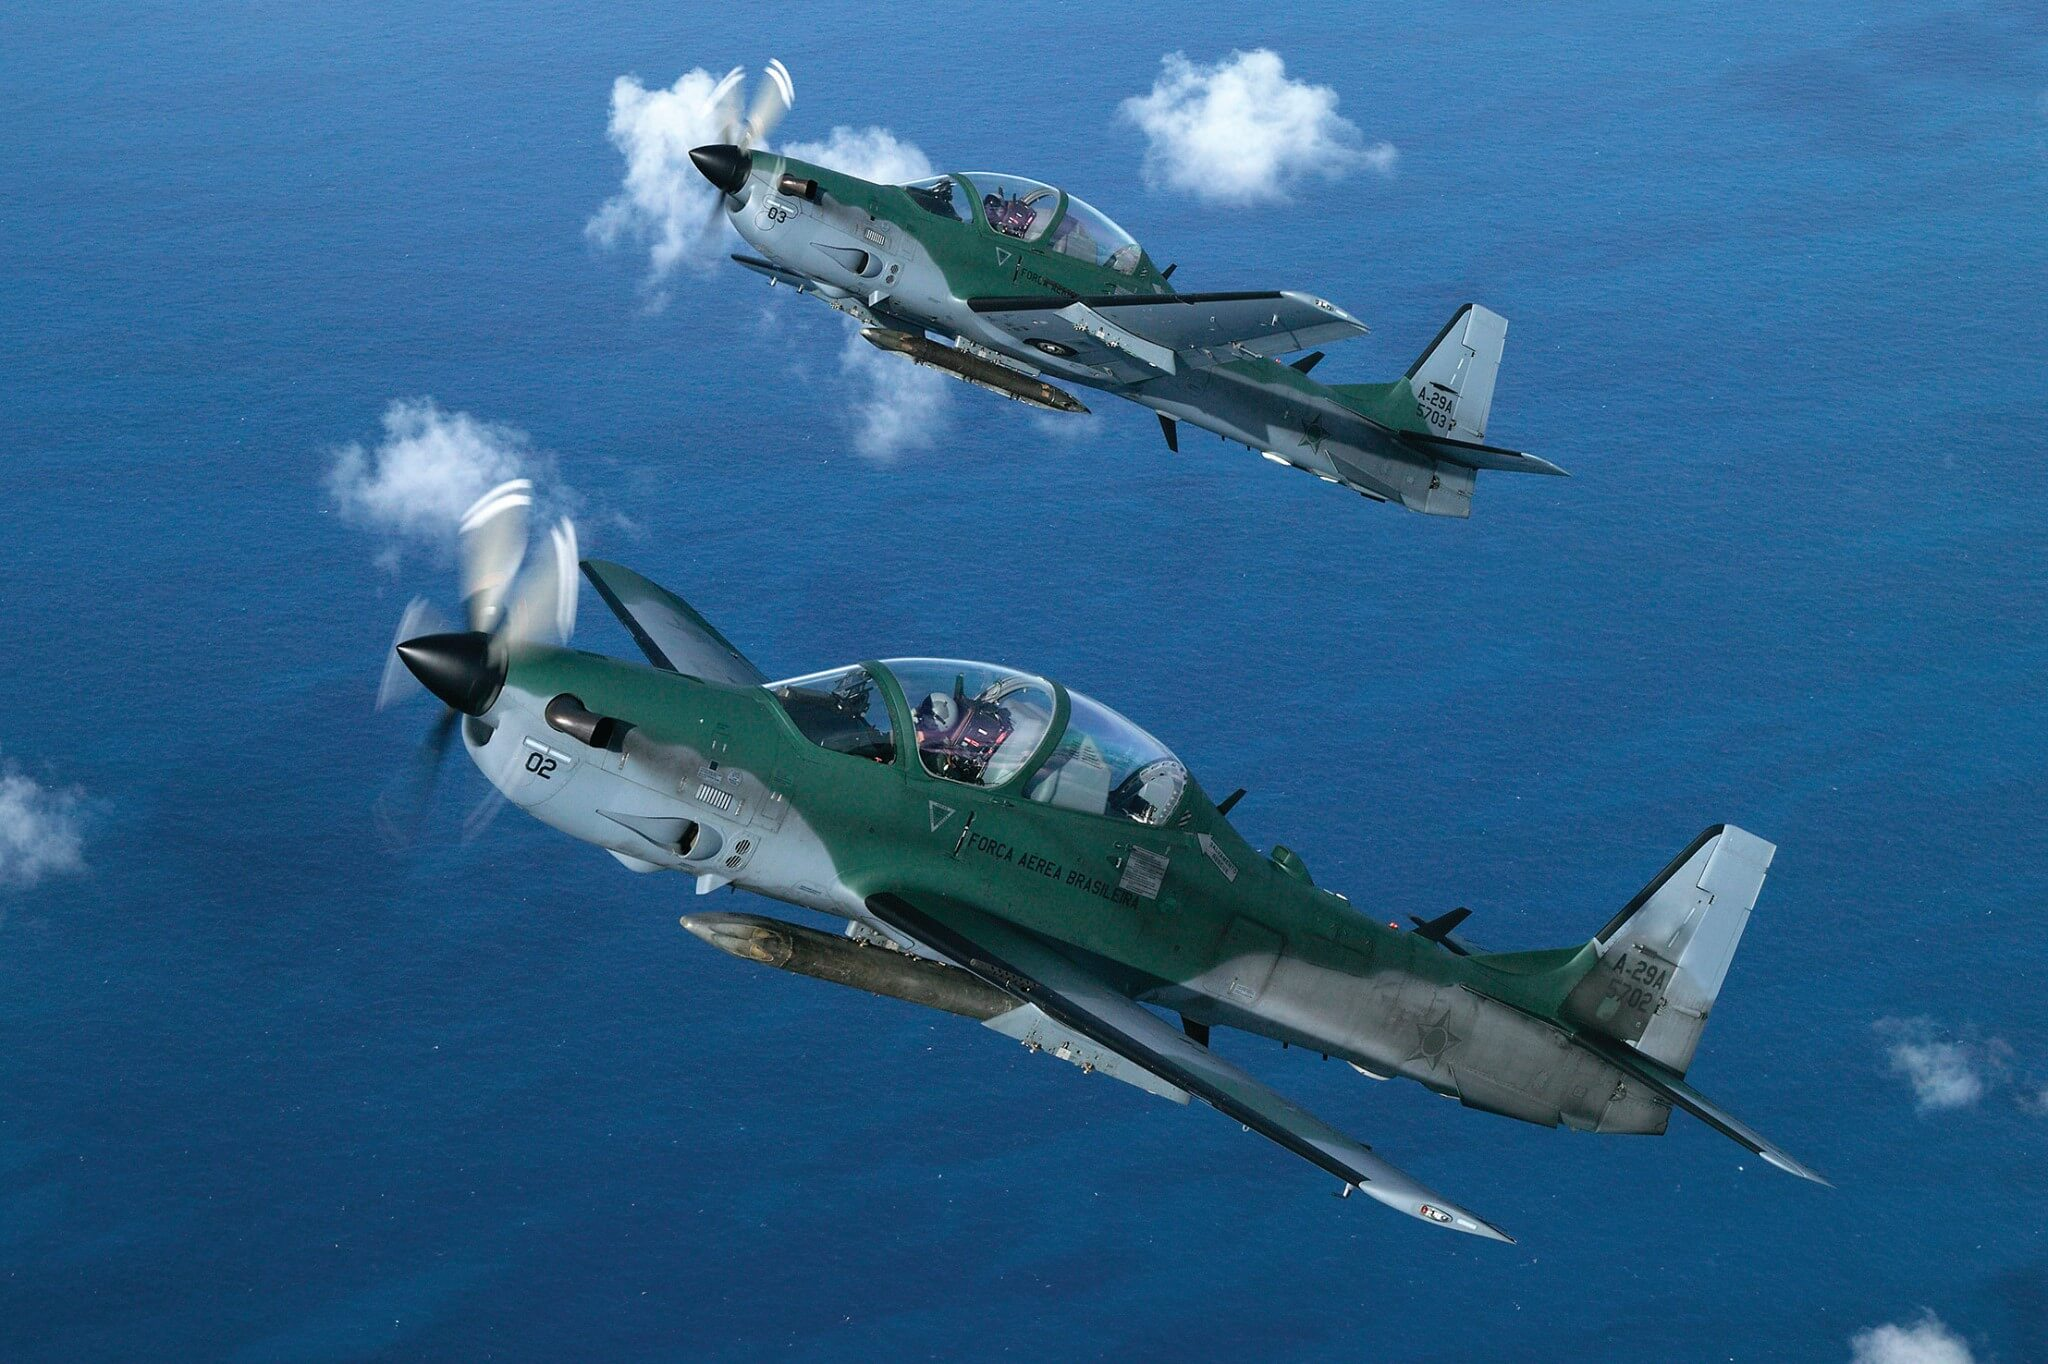 Philippines Officially Chooses Super Tucano For Counterinsurgency